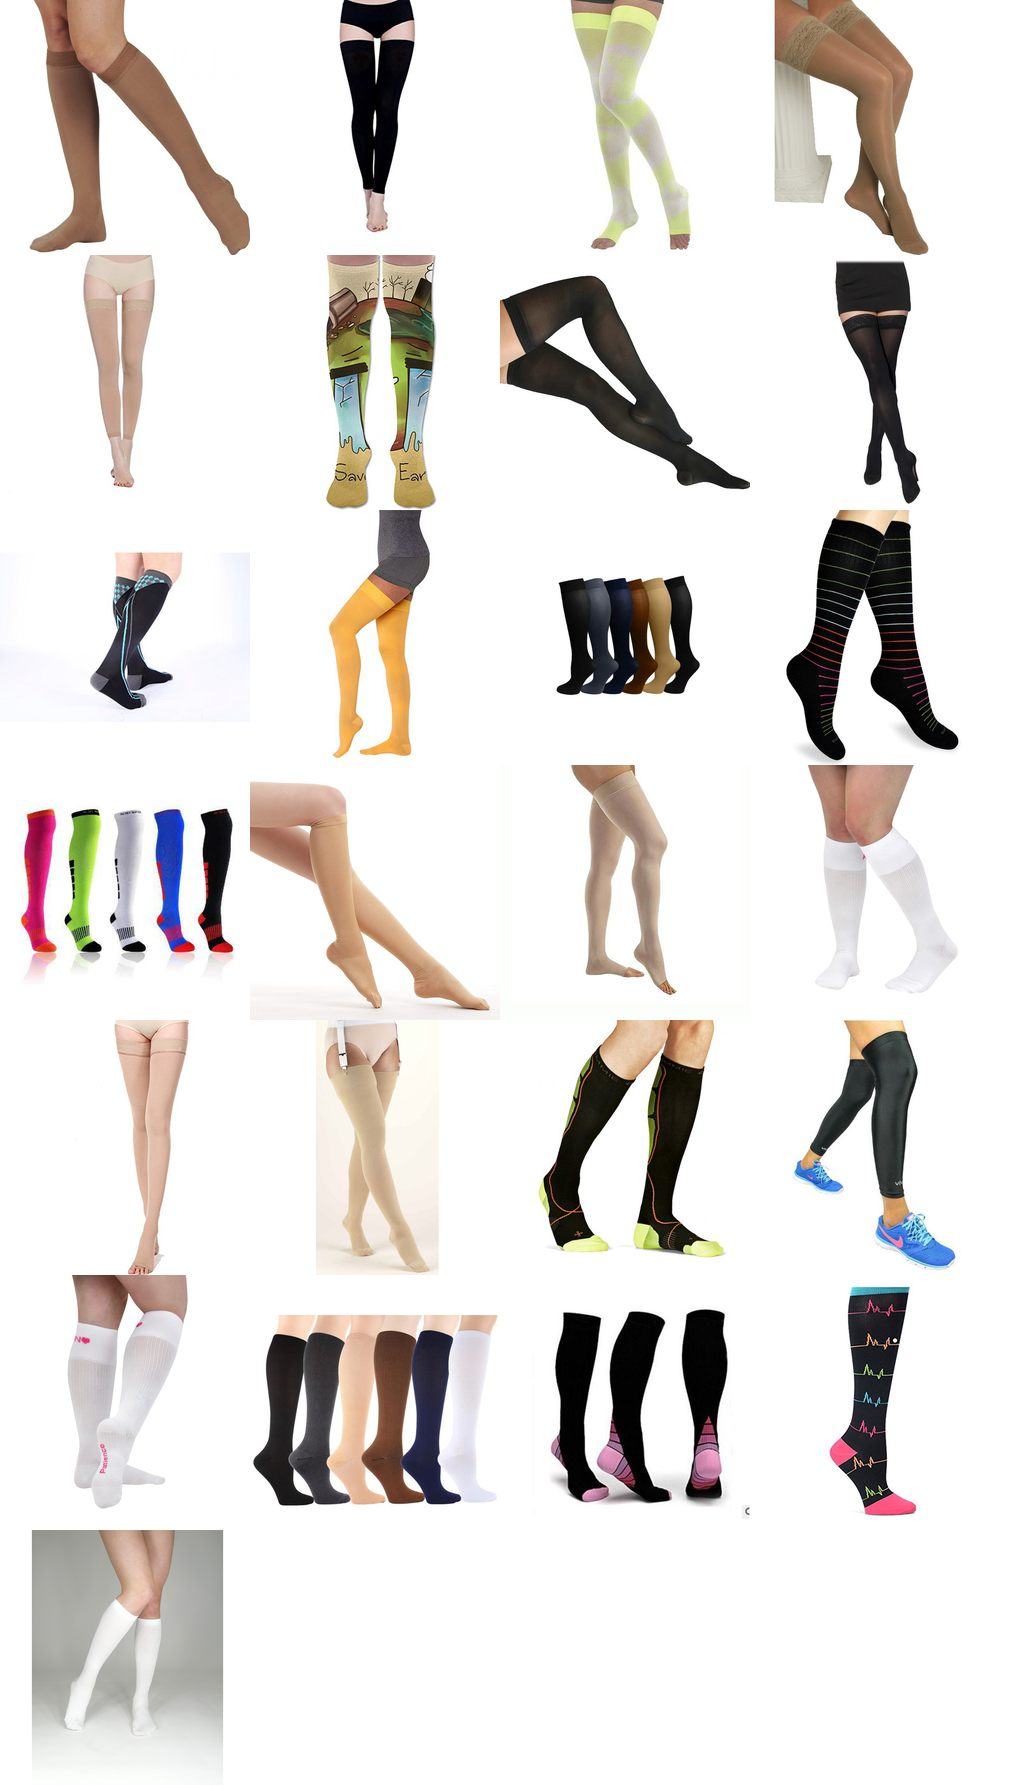 thigh high compression socks for nurses